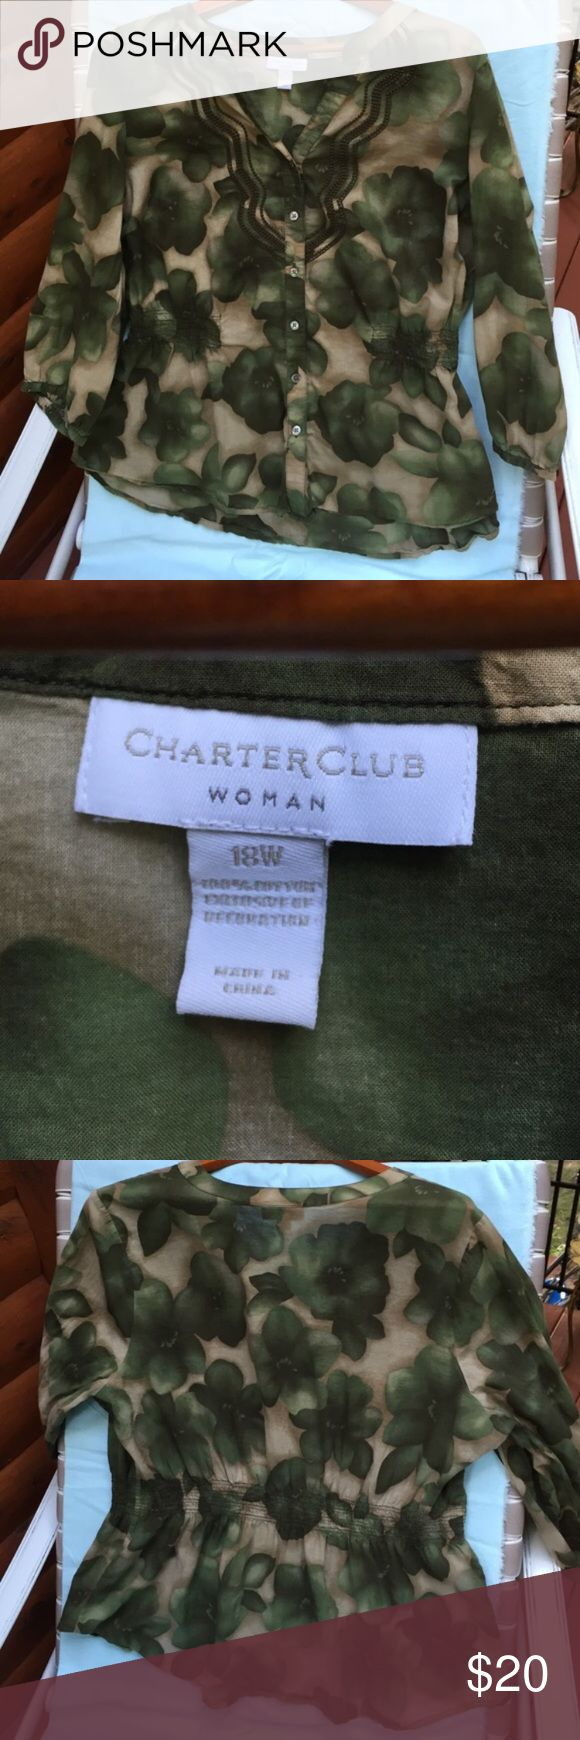 Gathered waist smock green beige and black Green four leave clovers with black tint and beige background. Gathered at waist with elbow length sleeves. Never worn; like new Charter Club Tops Blouses